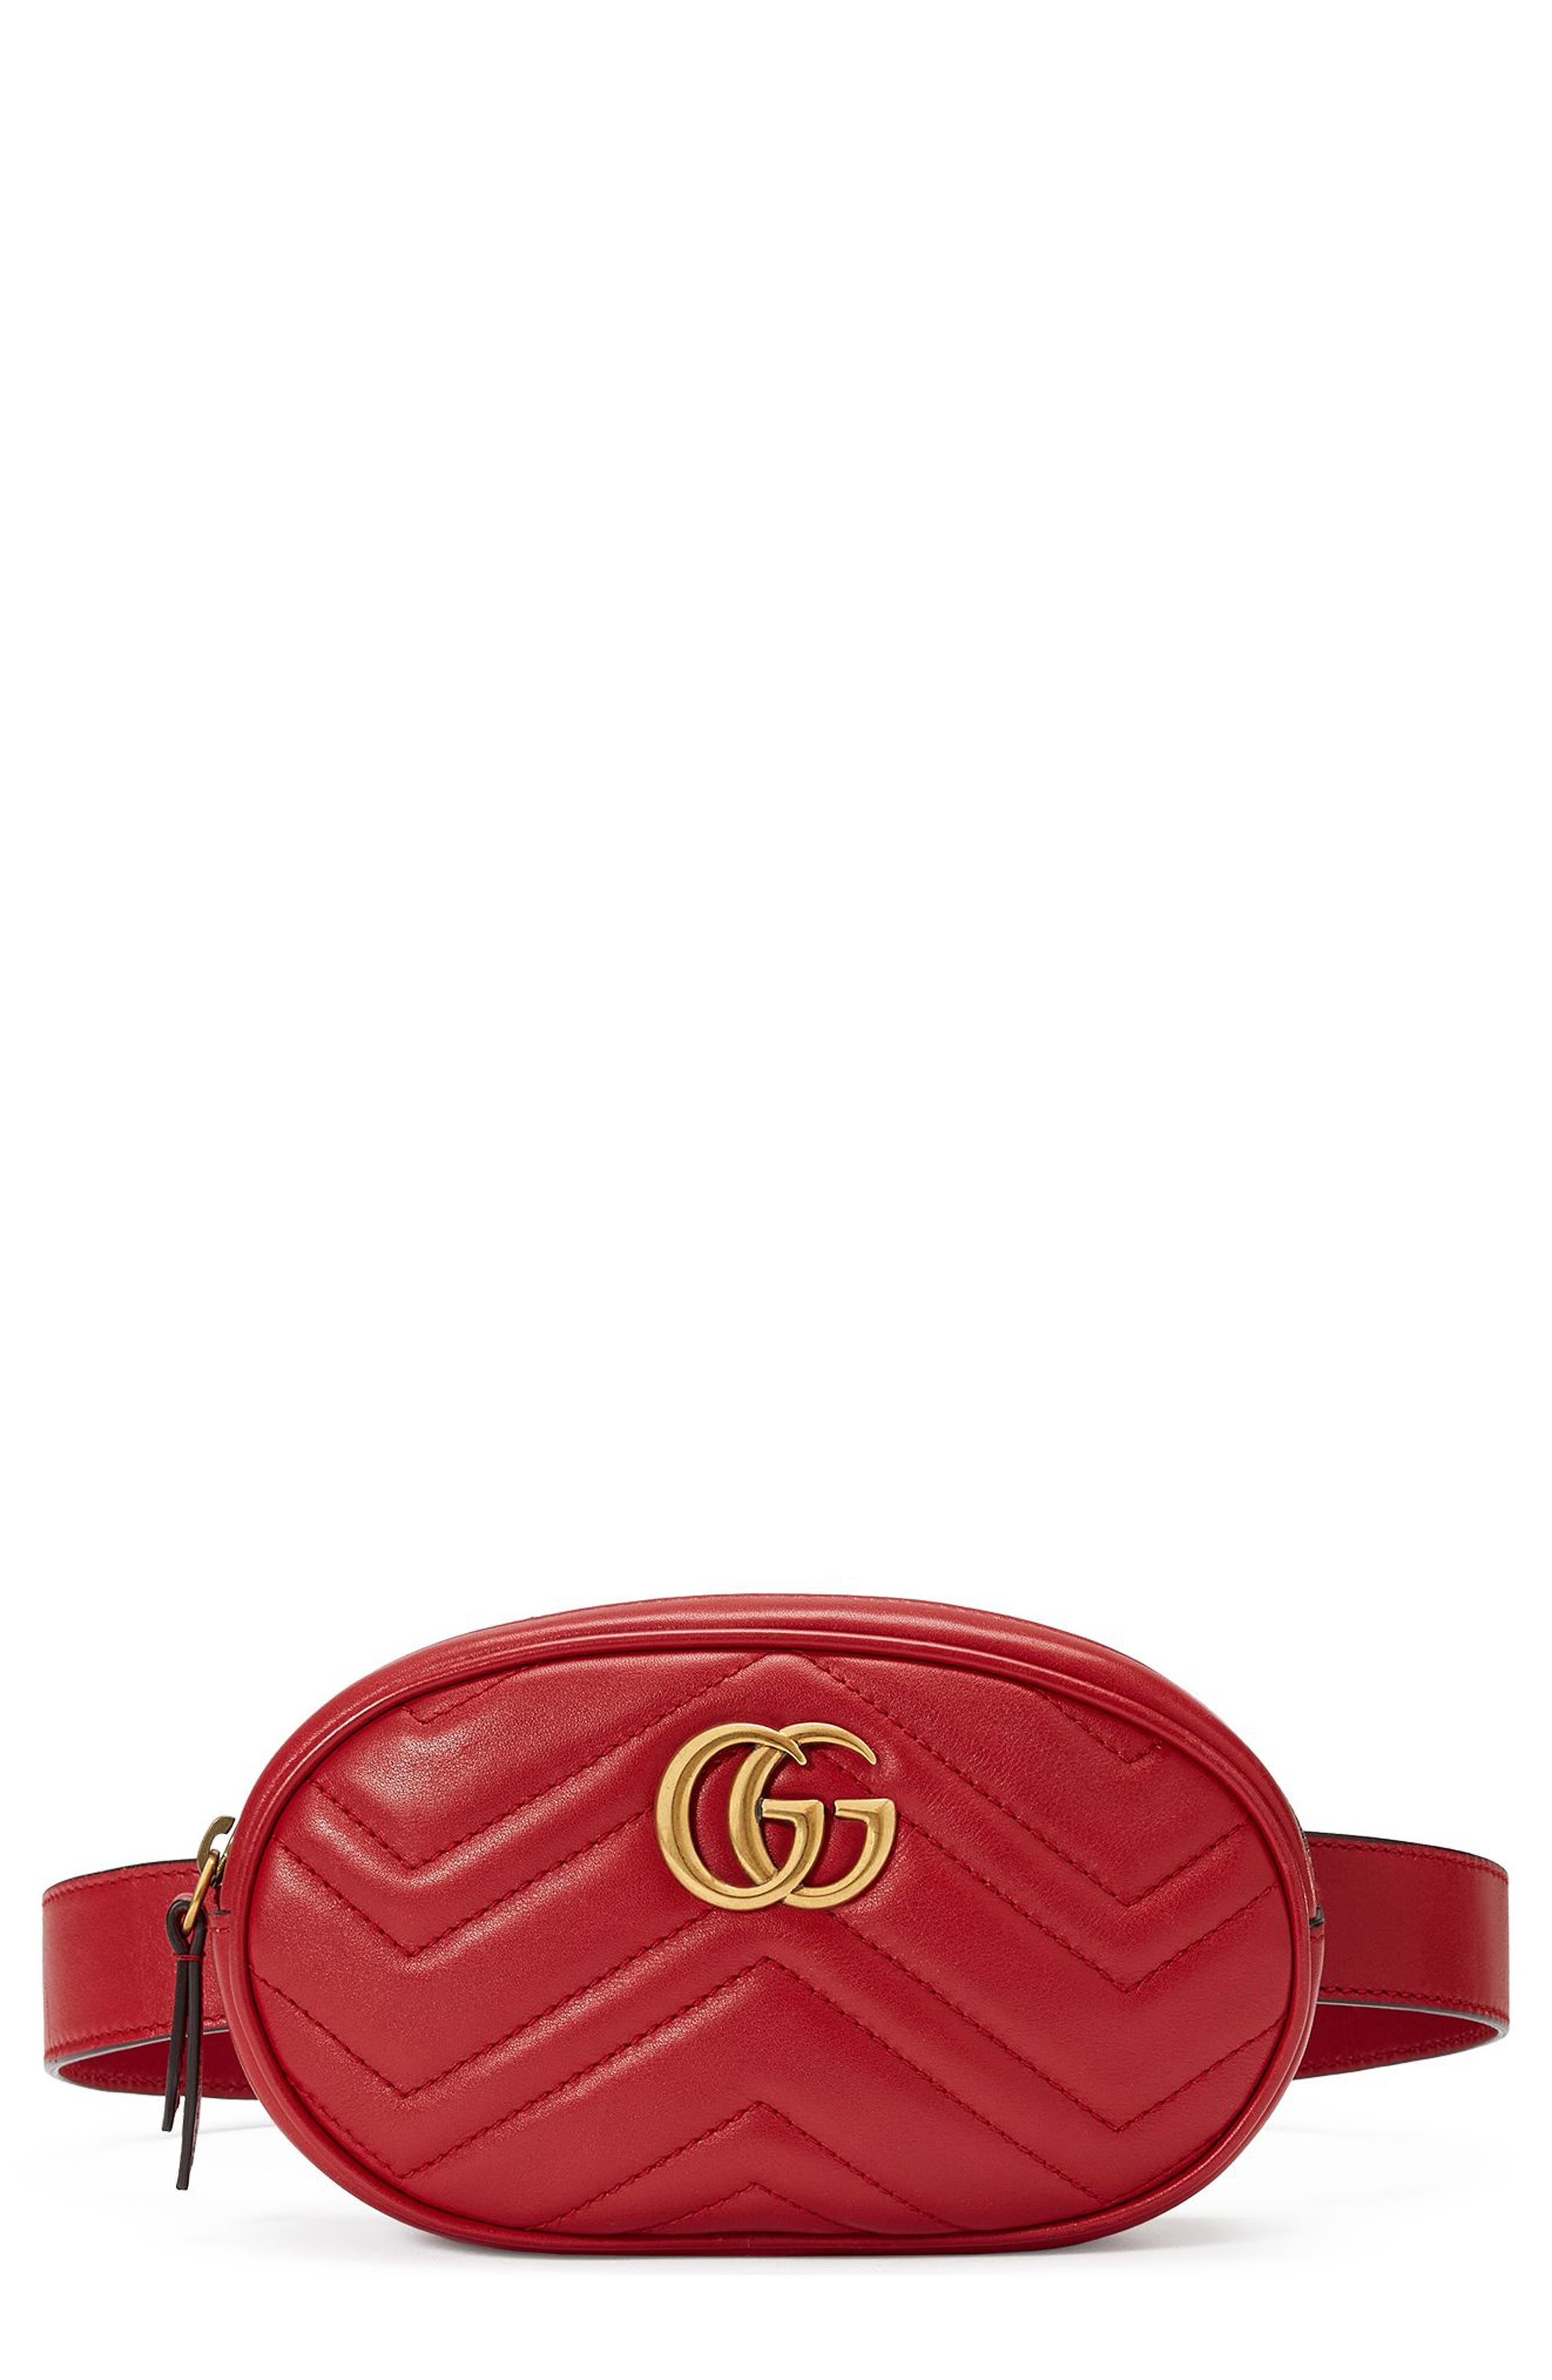 GG Marmont 2.0 Matelassé Leather Belt Bag,                         Main,                         color, Hibiscus Red